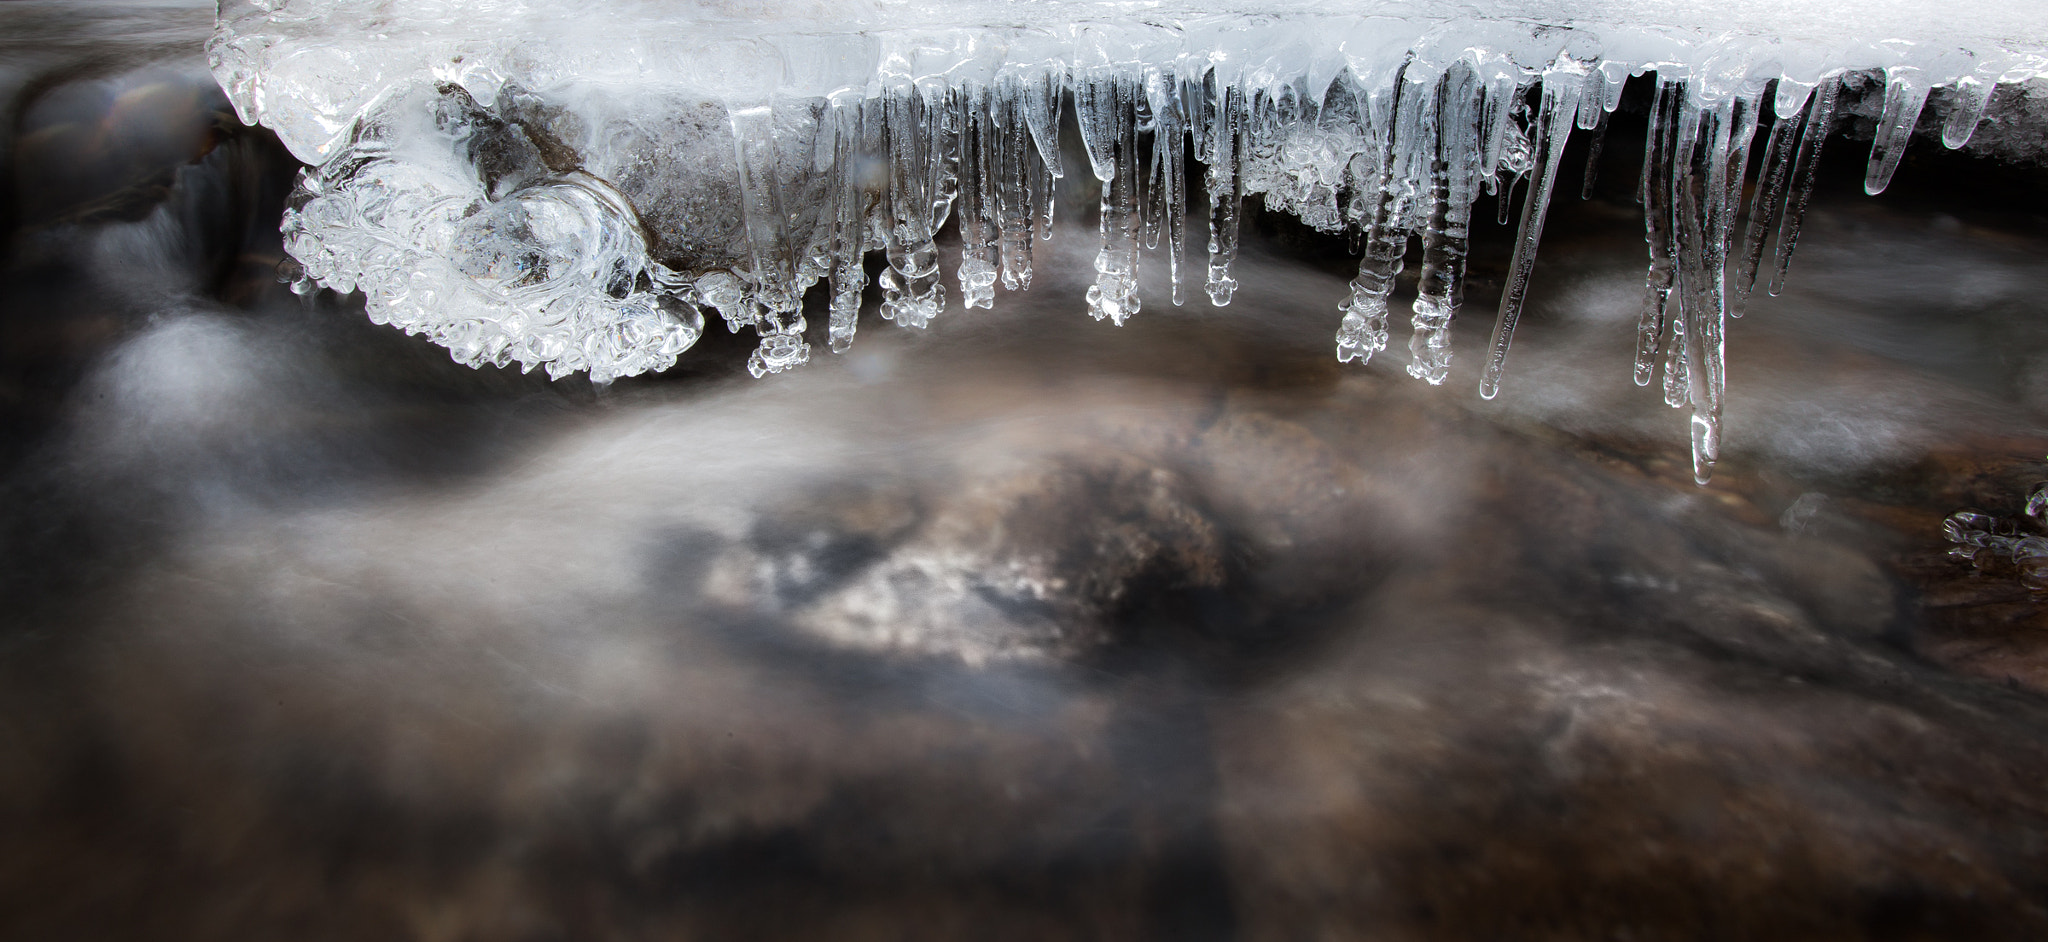 Photograph Ice and river by Bjarte Haugland on 500px